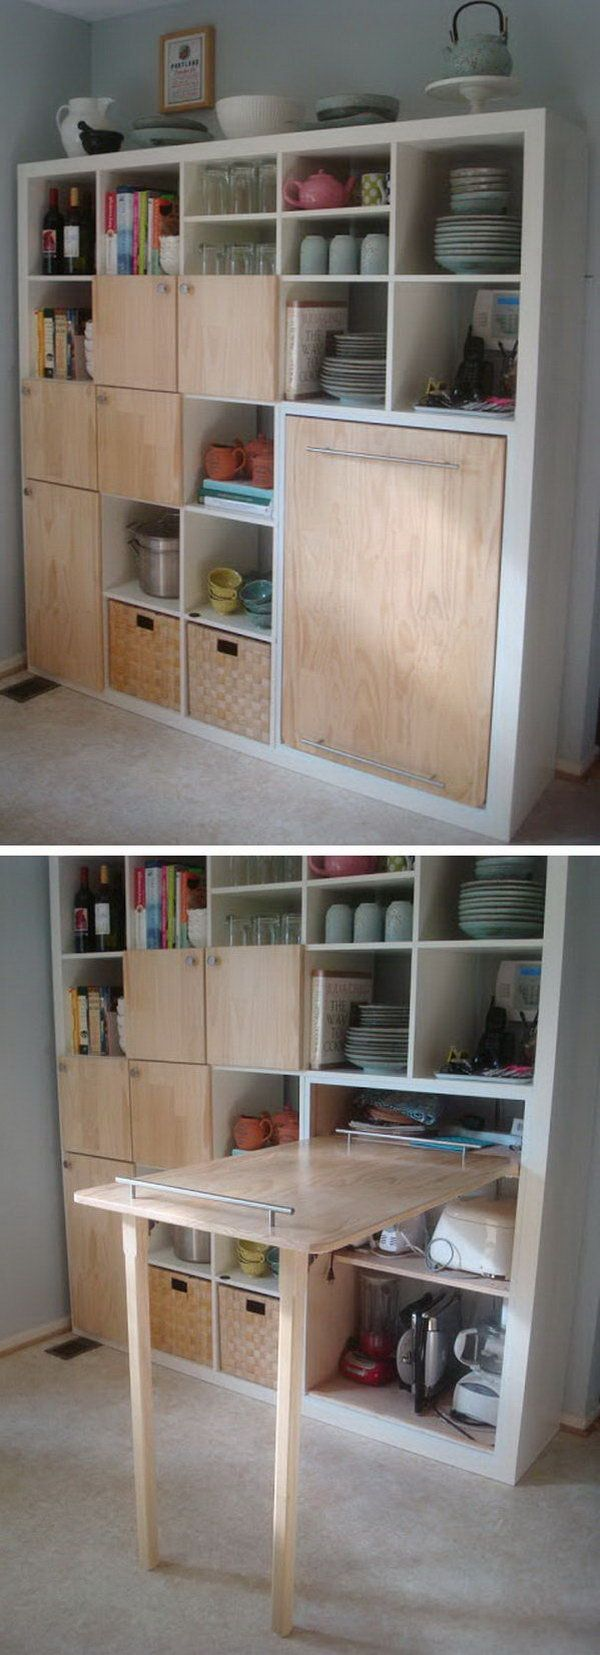 Pull Out Kitchen Shelves Ikea 25 Best Ideas About Pull Out Shelves On Pinterest Installing